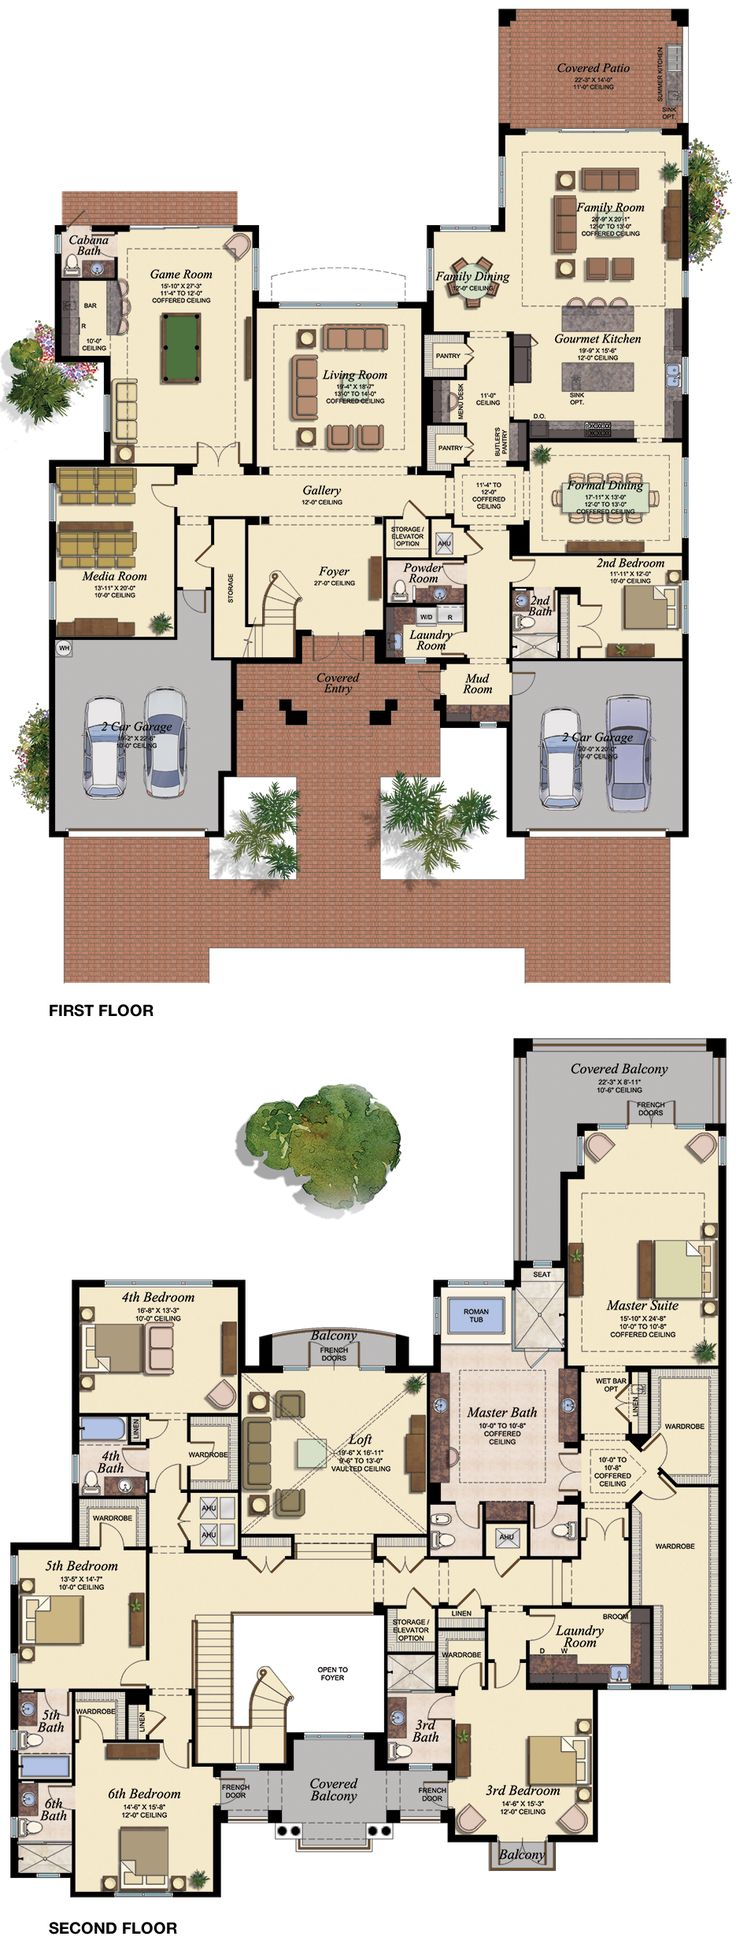 2 storey floor plan bed 2 as study garage as gym